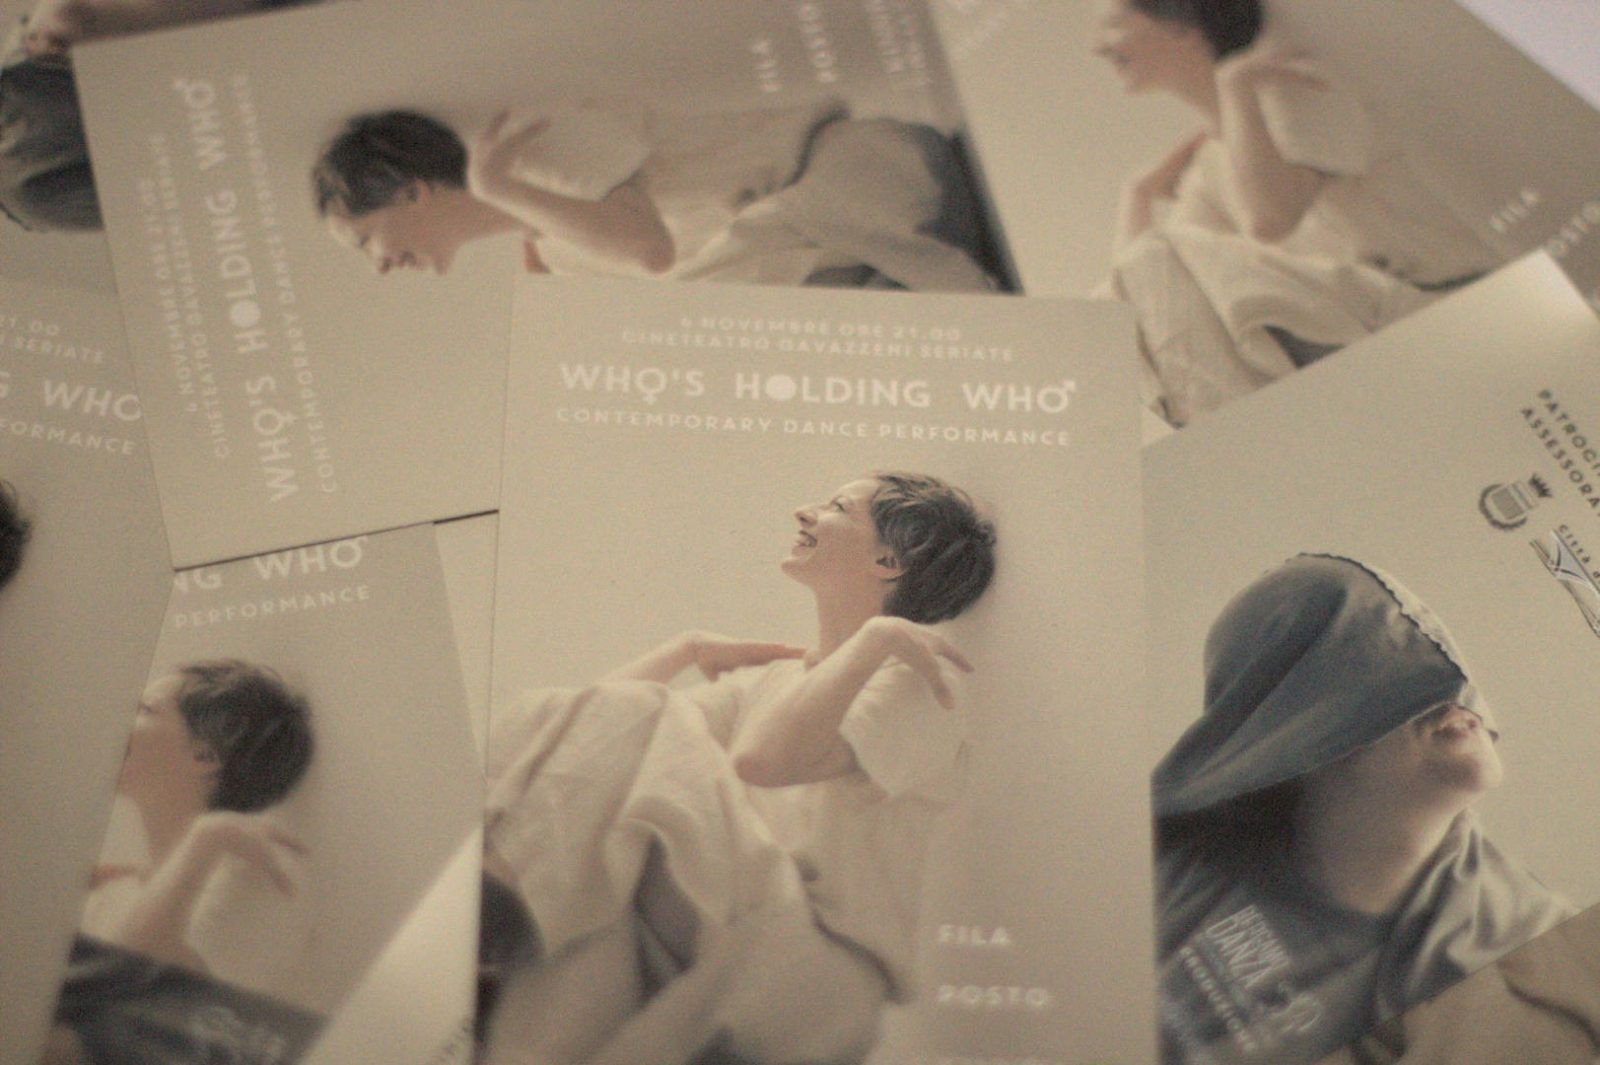 WHO'S HOLDING WHO - CONTEMPORARY DANCE PERFORMANCE - BIGLIETTI DI INGRESSO